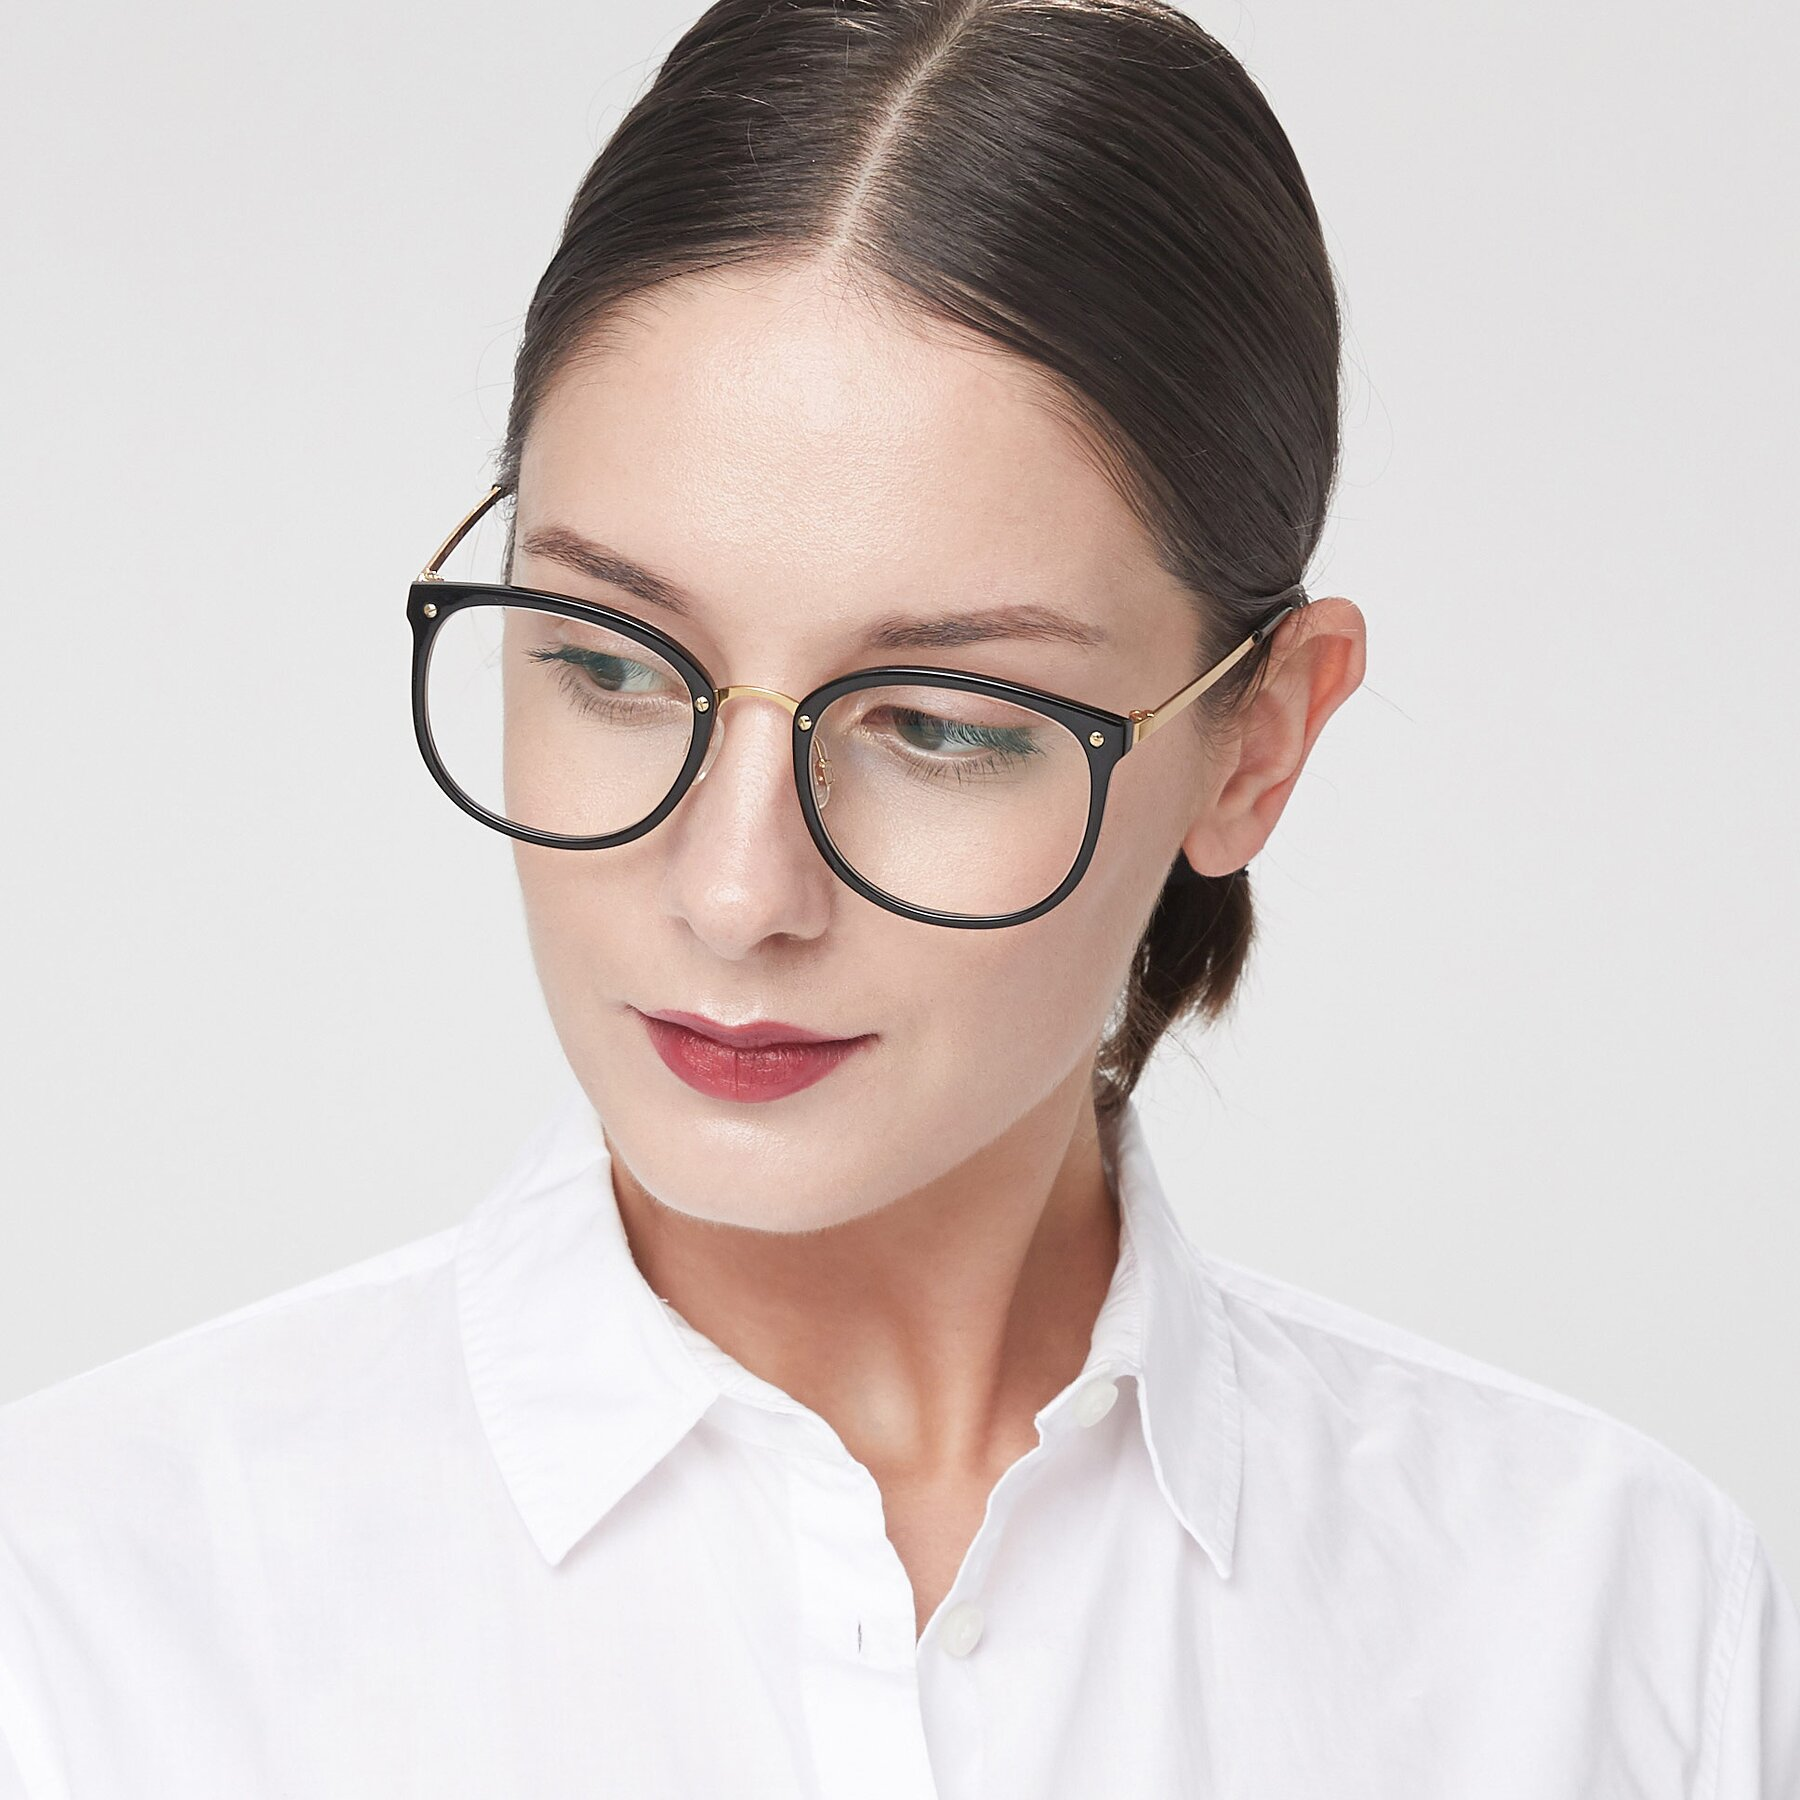 Women's lifestyle photography of Timeless in Black-Gold with Clear Eyeglass Lenses